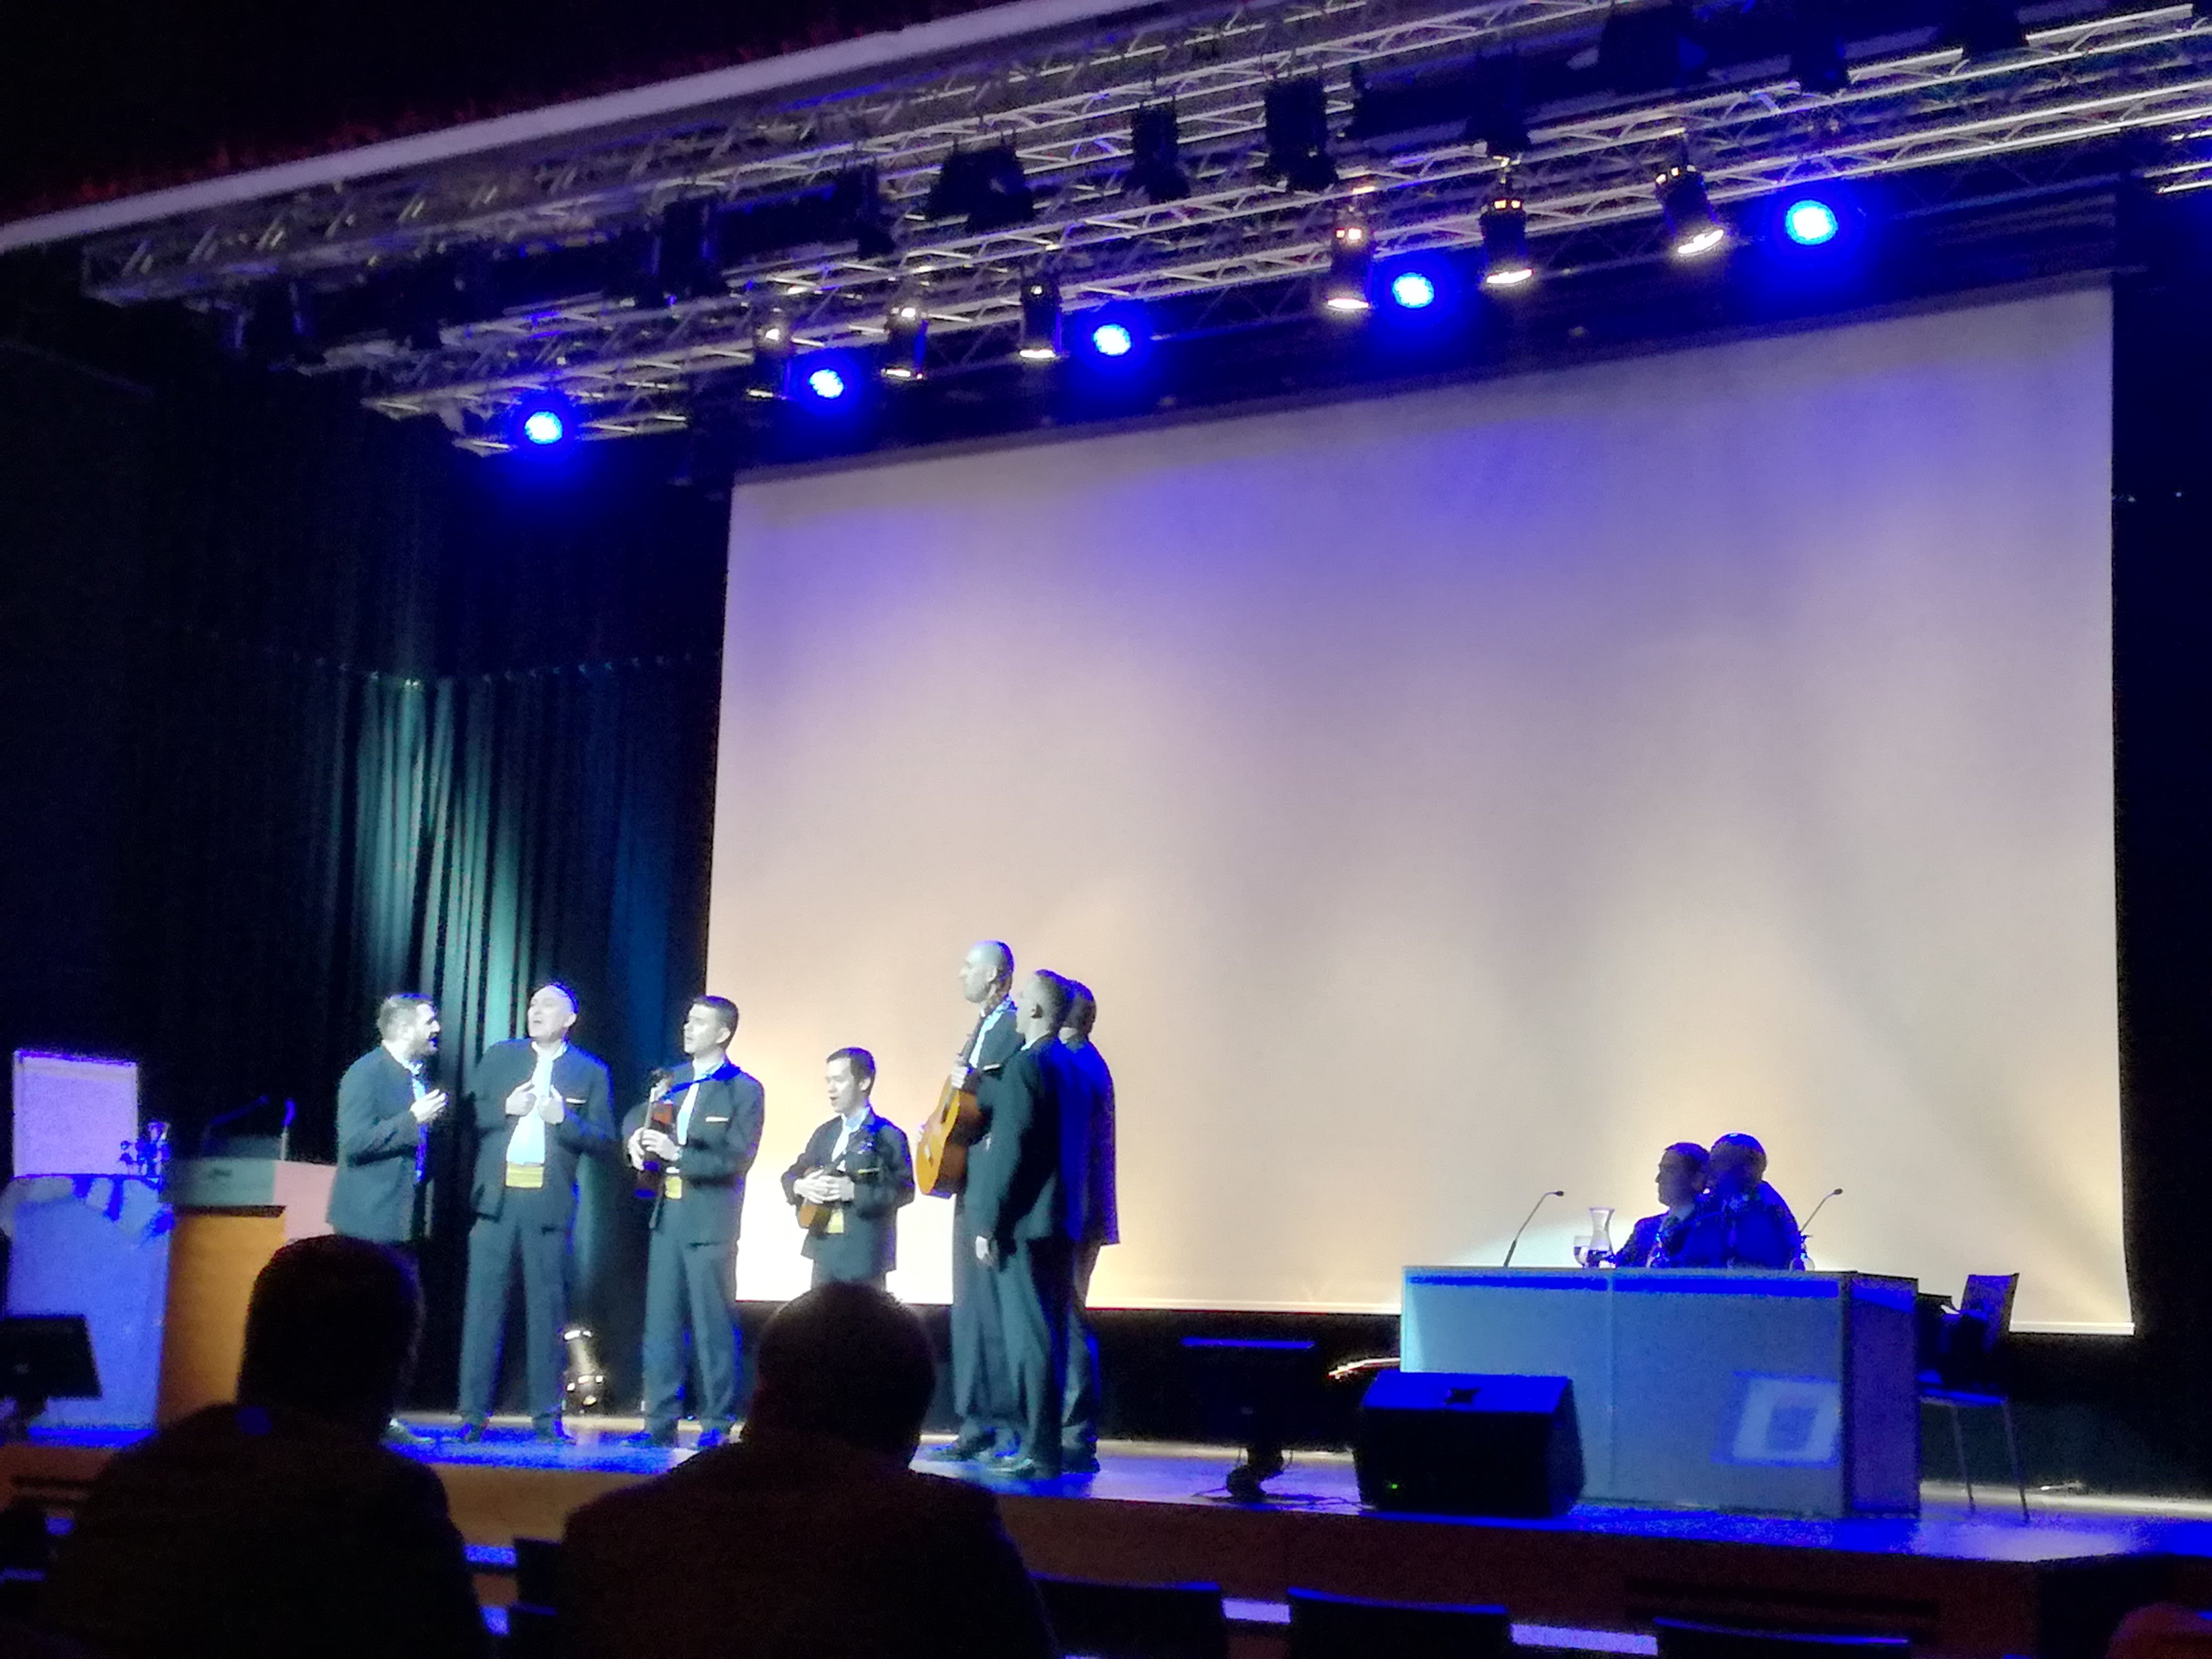 Congress opening with Klapa music